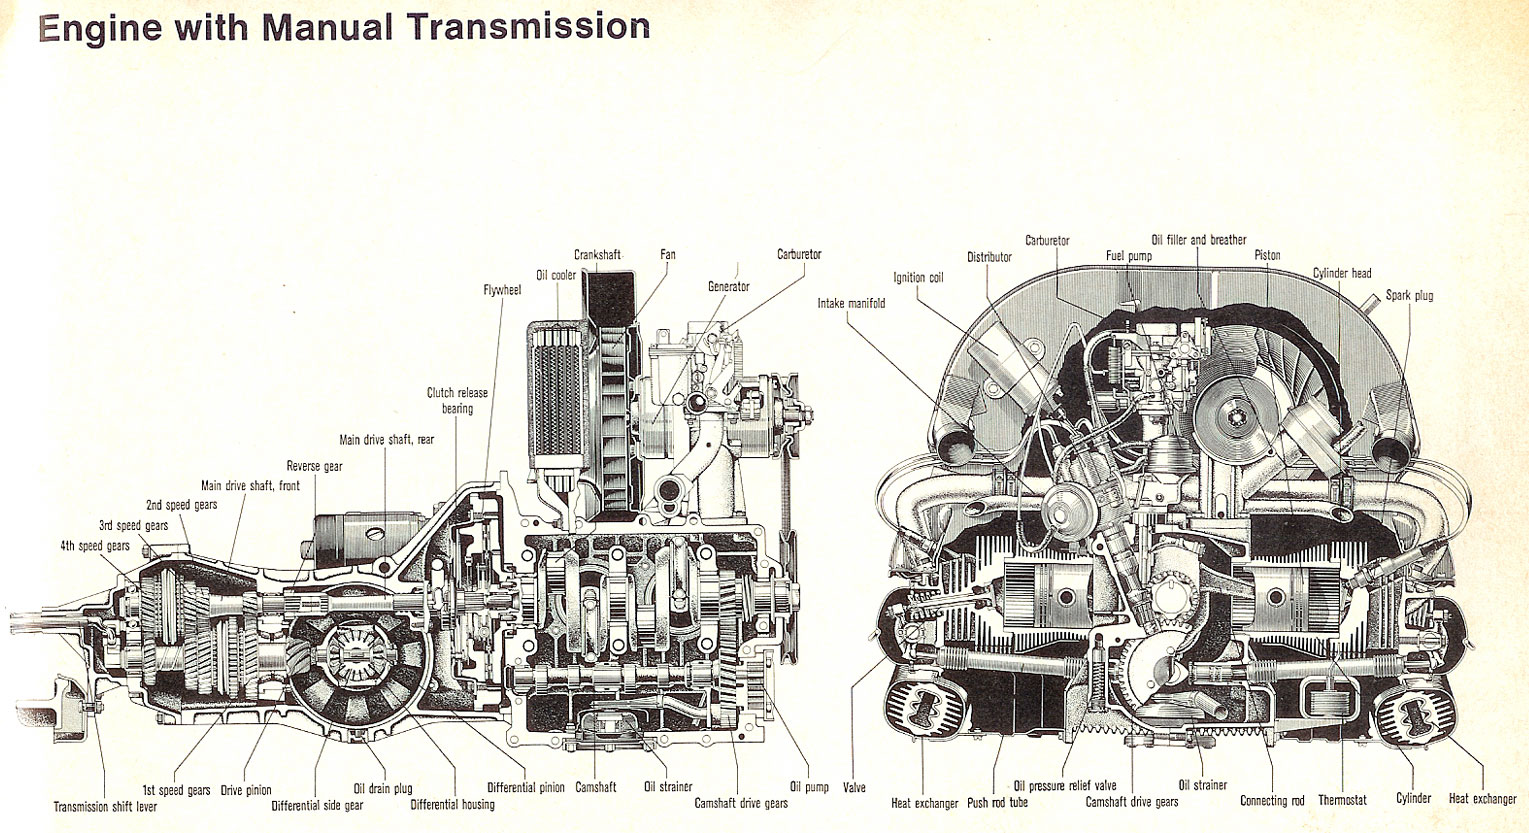 similiar drawing of air cooled engine keywords raio x motor vw fusca fórmula total · vw air cooled engine diagram